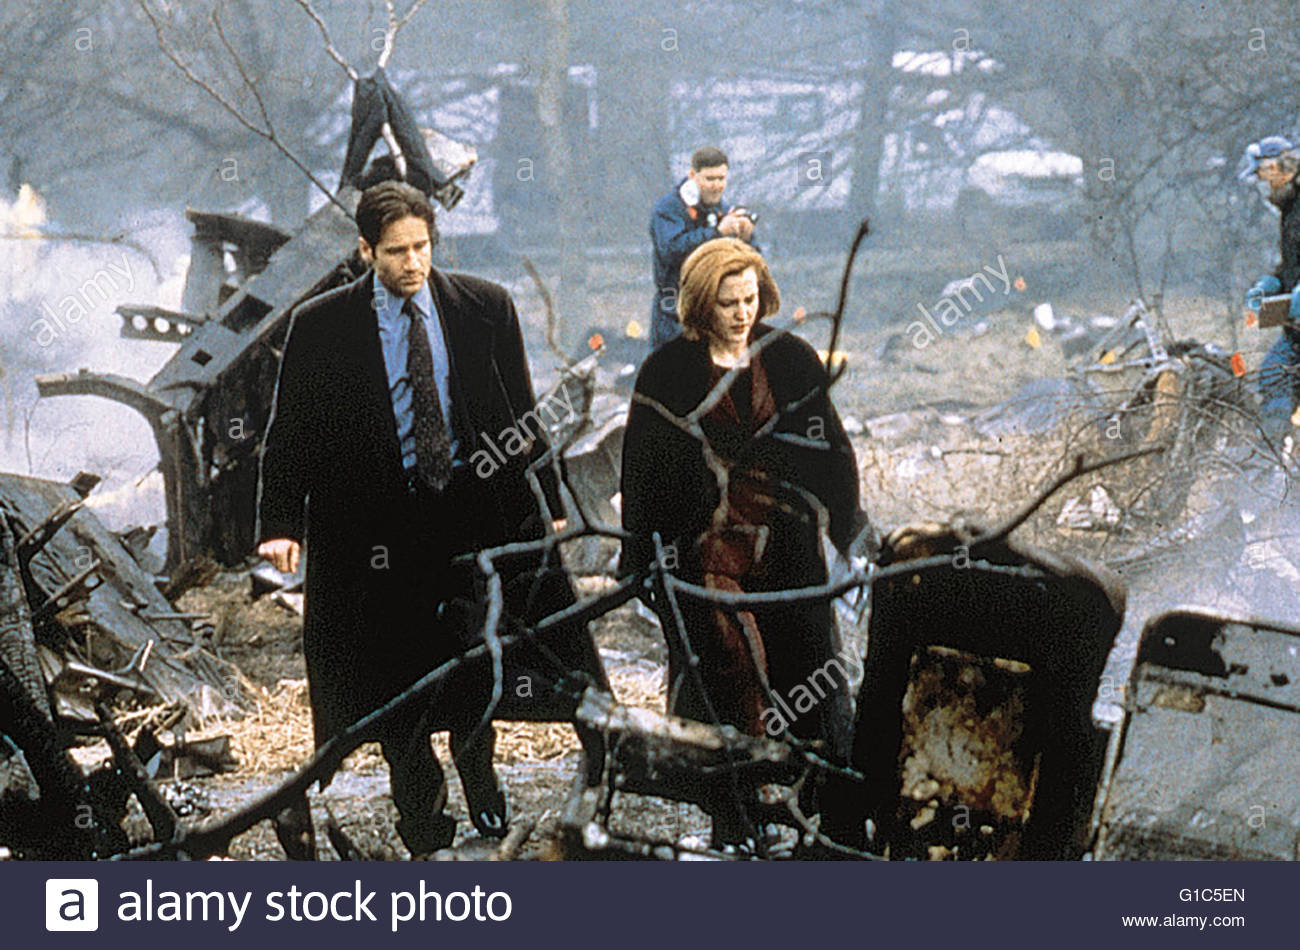 Akte X - Tempus Fugit / David Duchovny / Gillian Anderson / The X-Files, - Stock Image